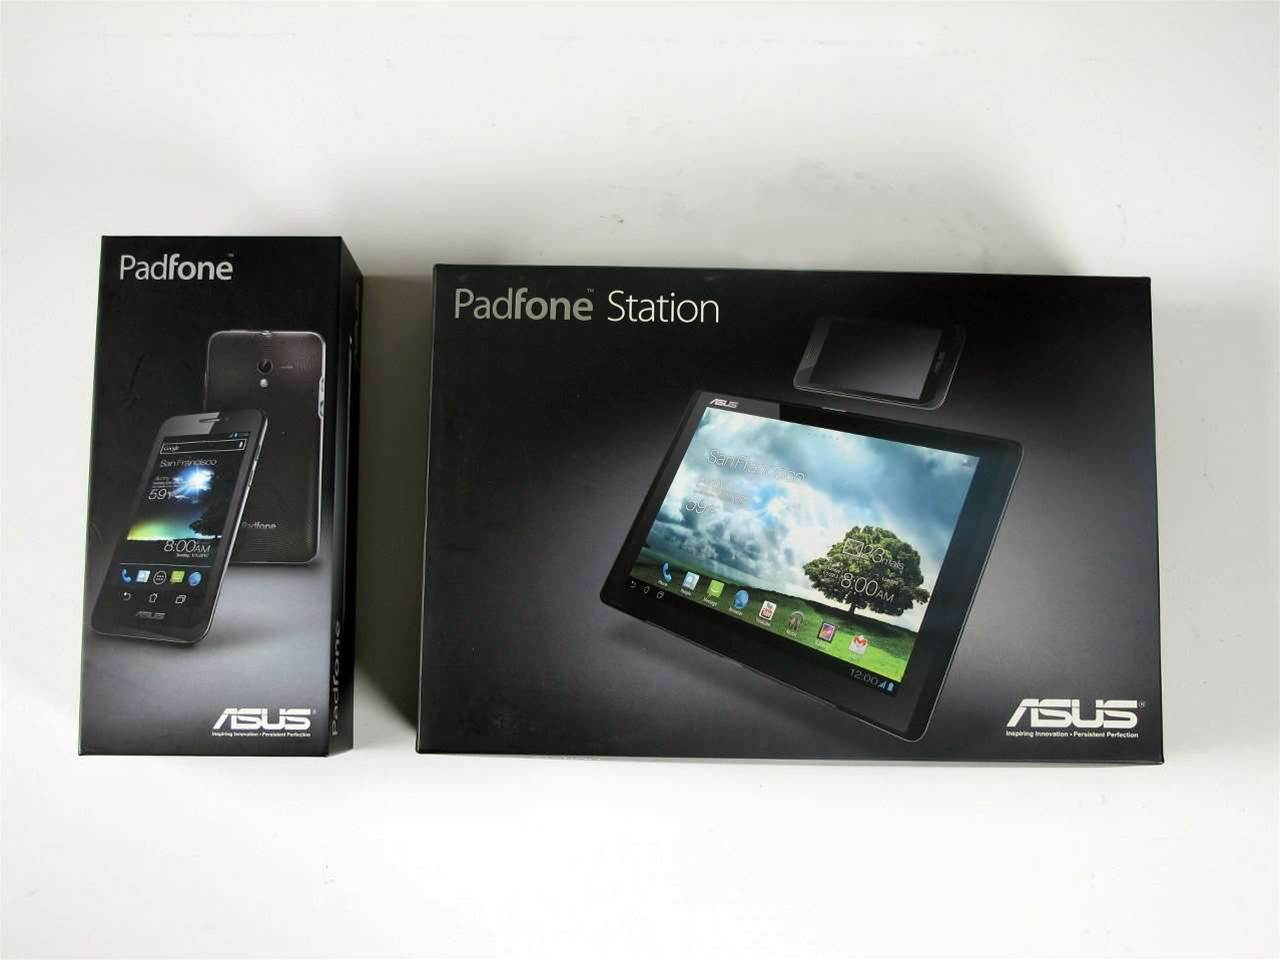 The PadFone smartphone and tablet station are bundled together for $999. An Asus Transformer keyboard attachment is also available for the device.